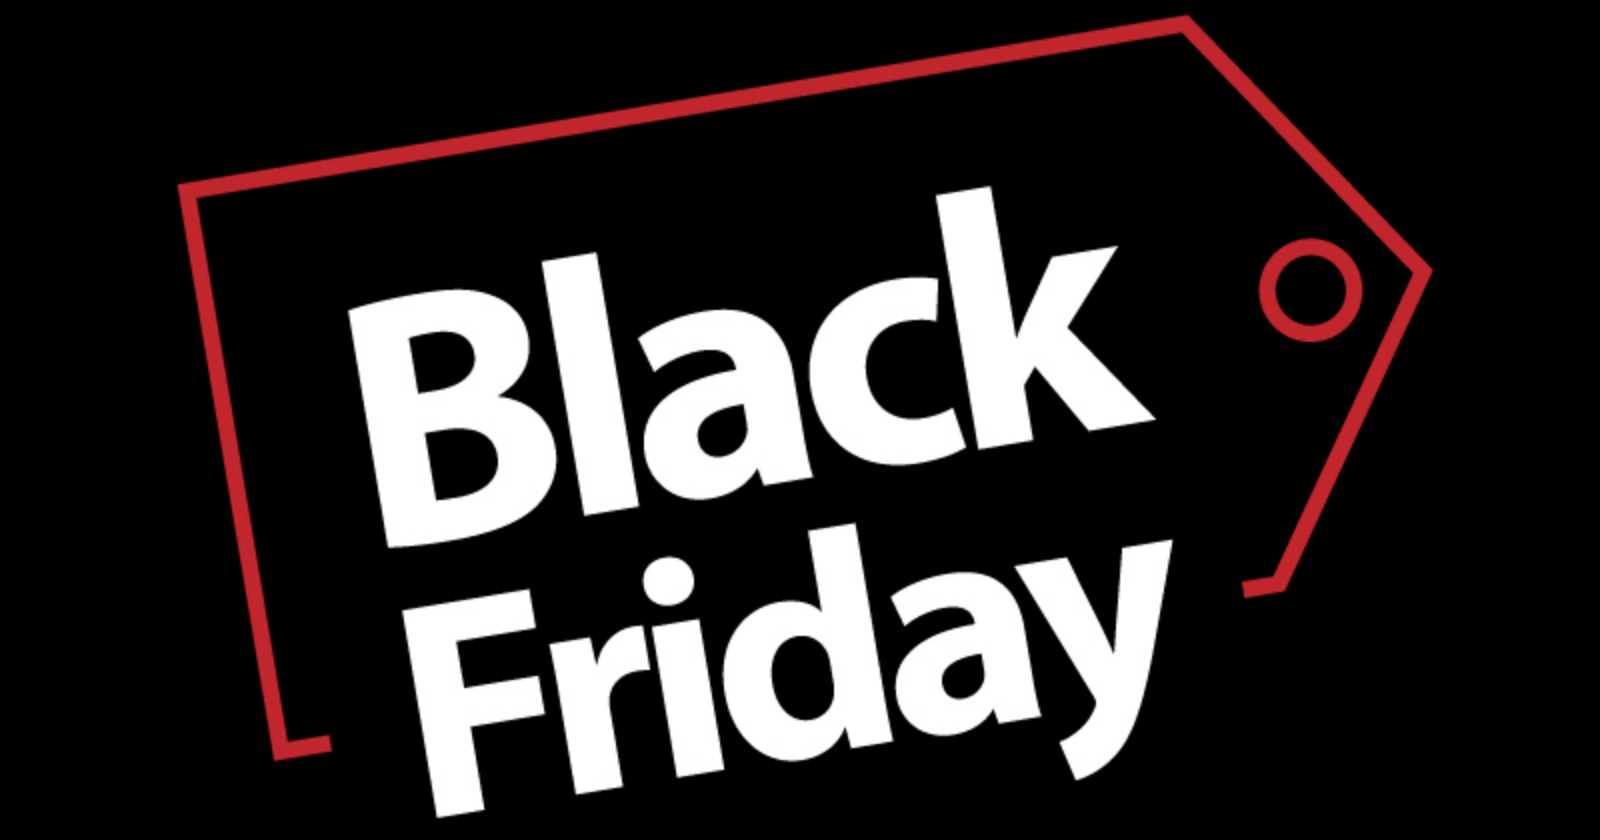 Black Friday Specials Google Ads Introduces Special Black Friday Ad Format Search